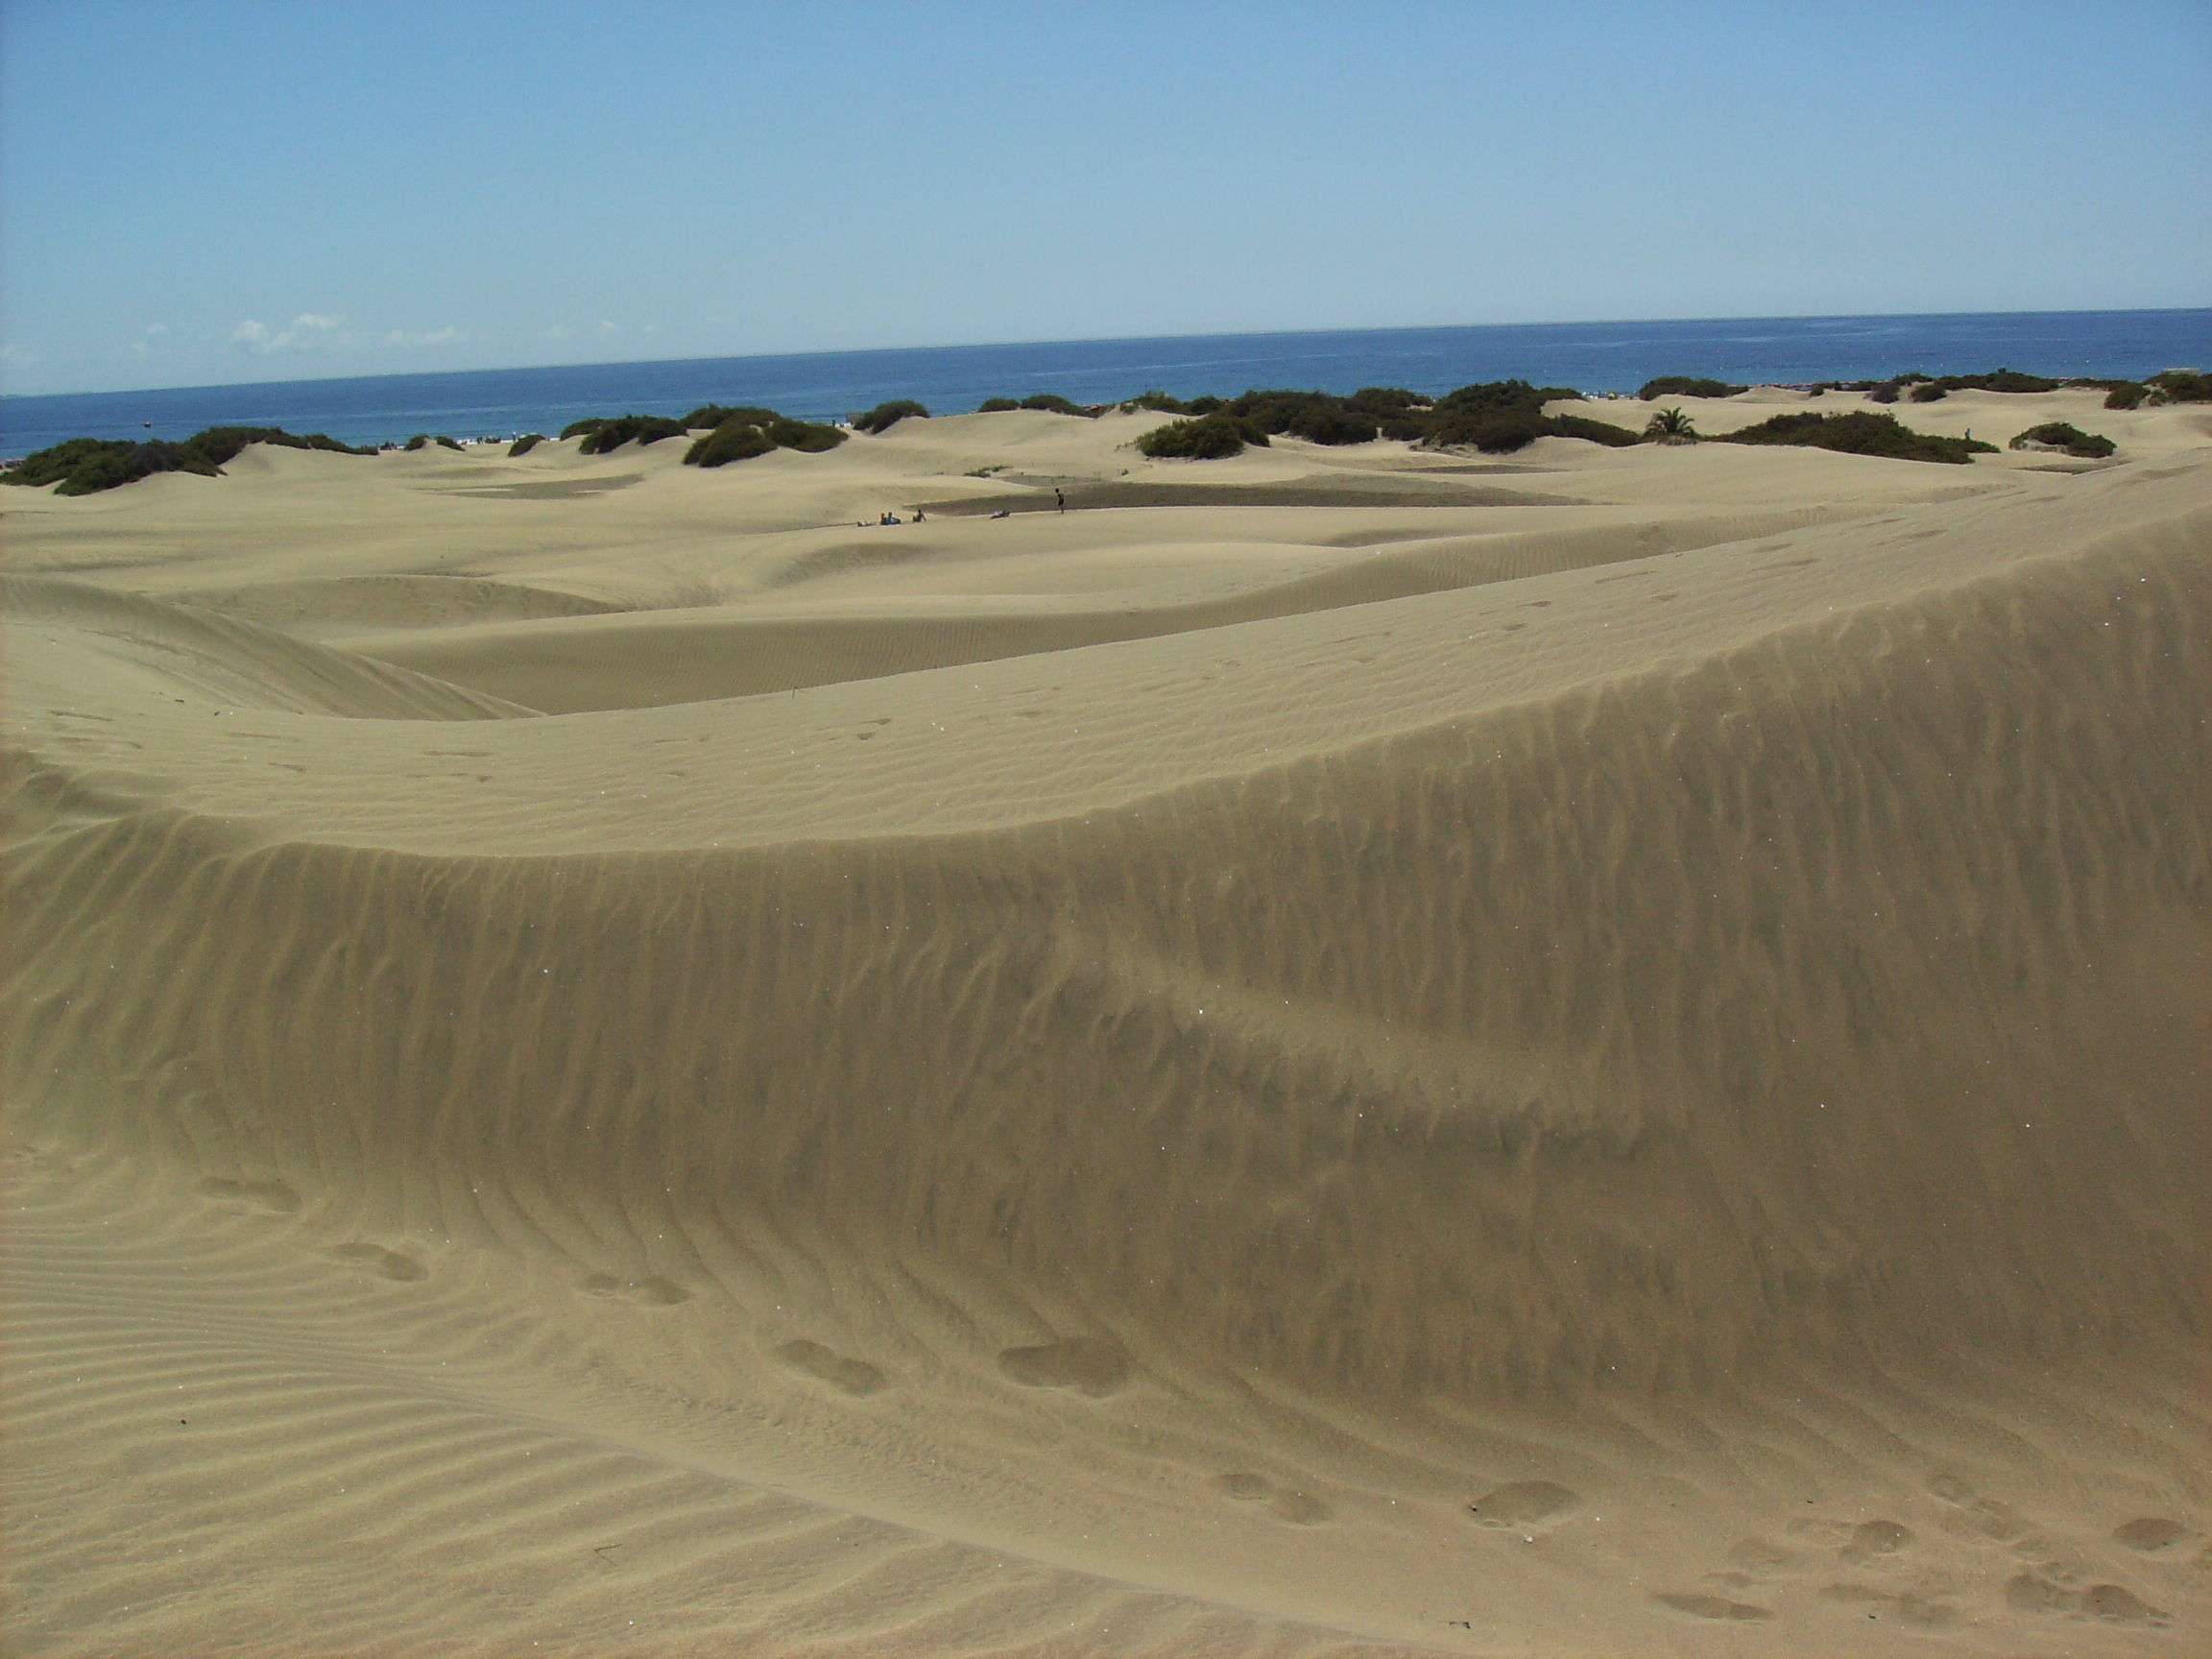 Dunes of Maspalomas: A 4,000 hectacre desert at the southern tip of the island